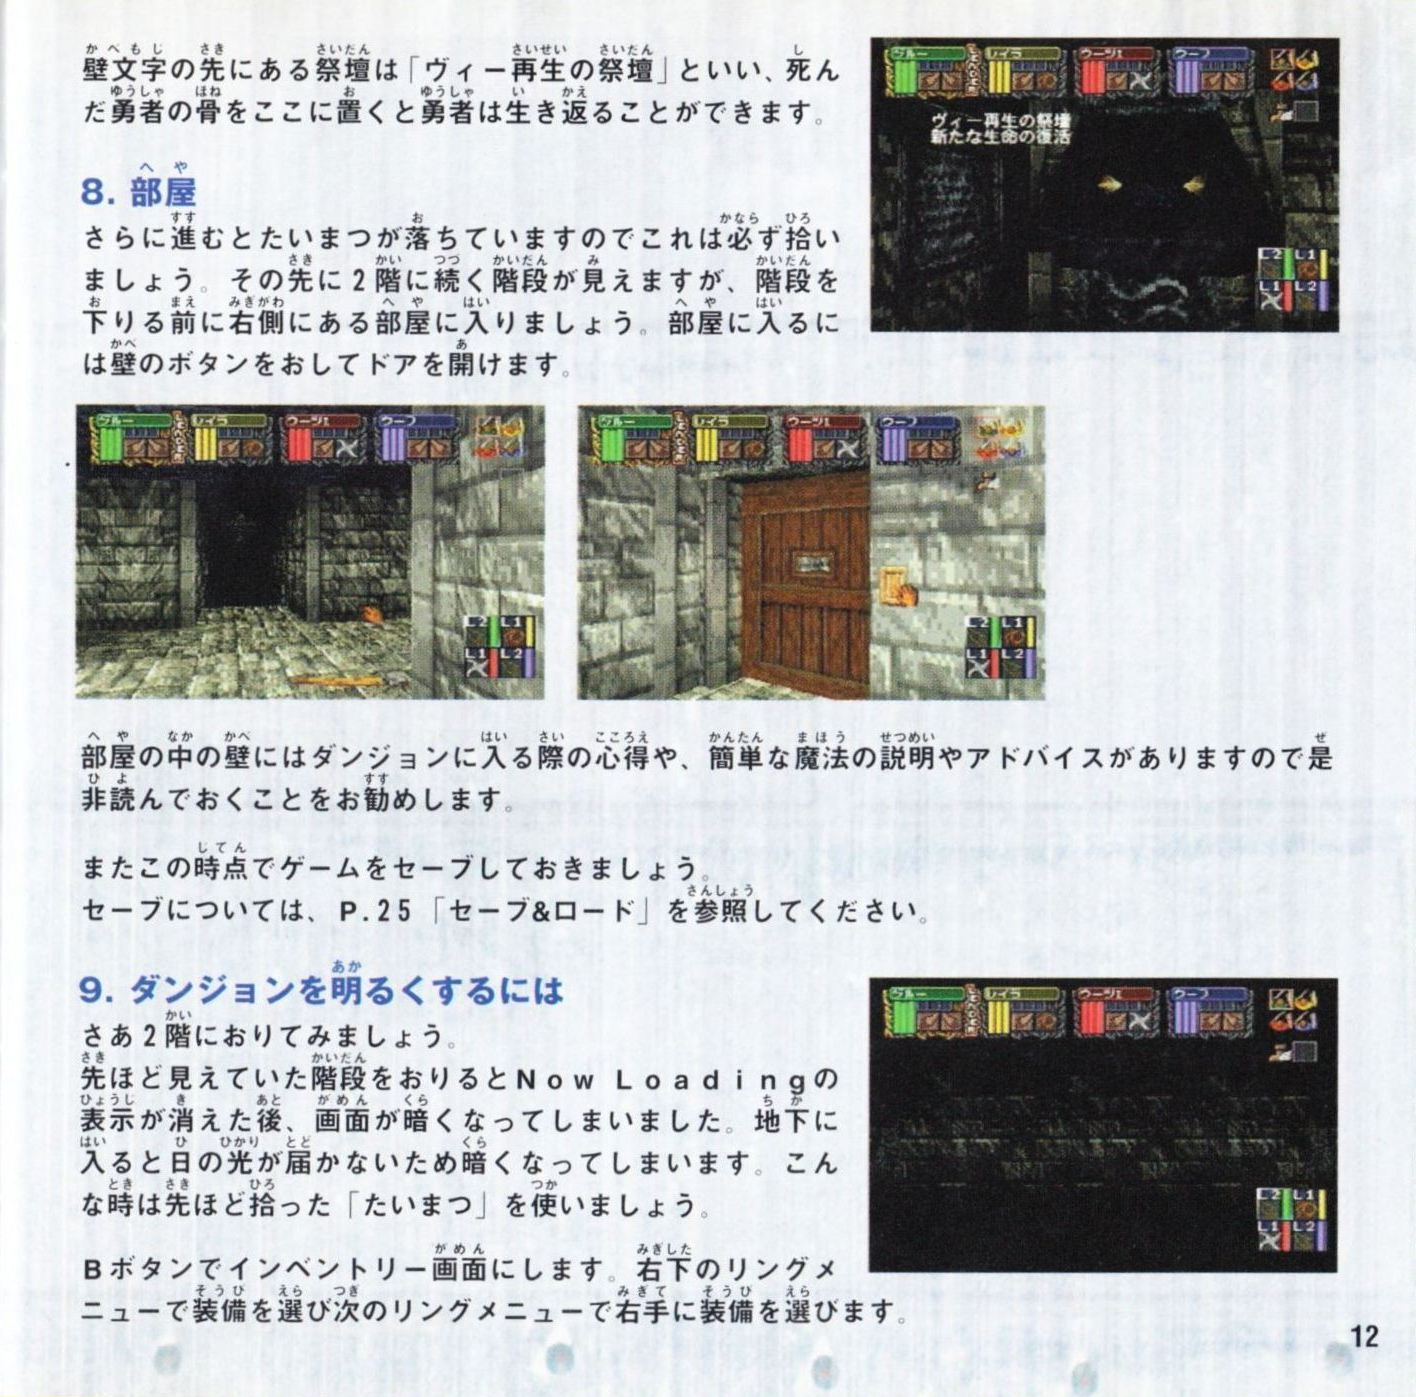 Game - Dungeon Master Nexus - JP - Sega Saturn - Booklet - Page 013 - Scan